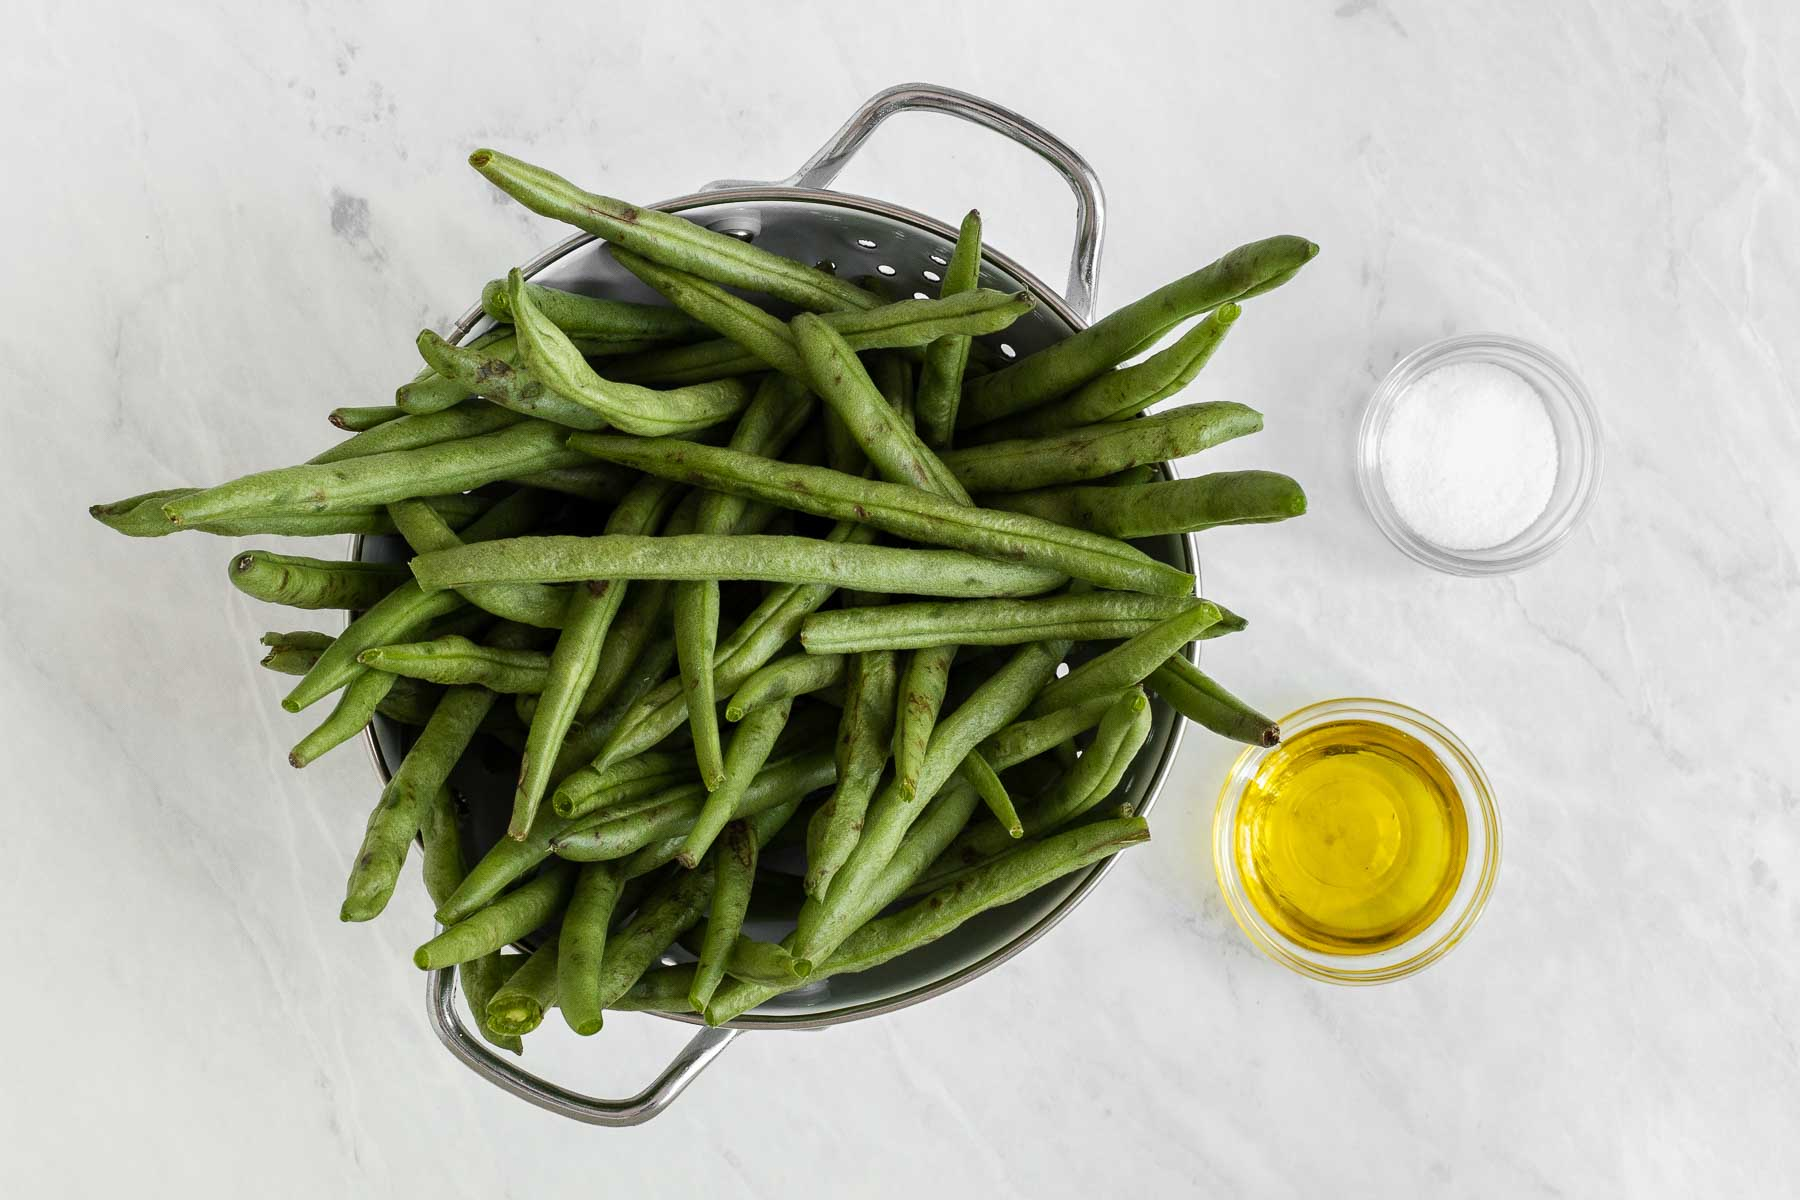 Raw green beans in colander with olive oil and salt on side.